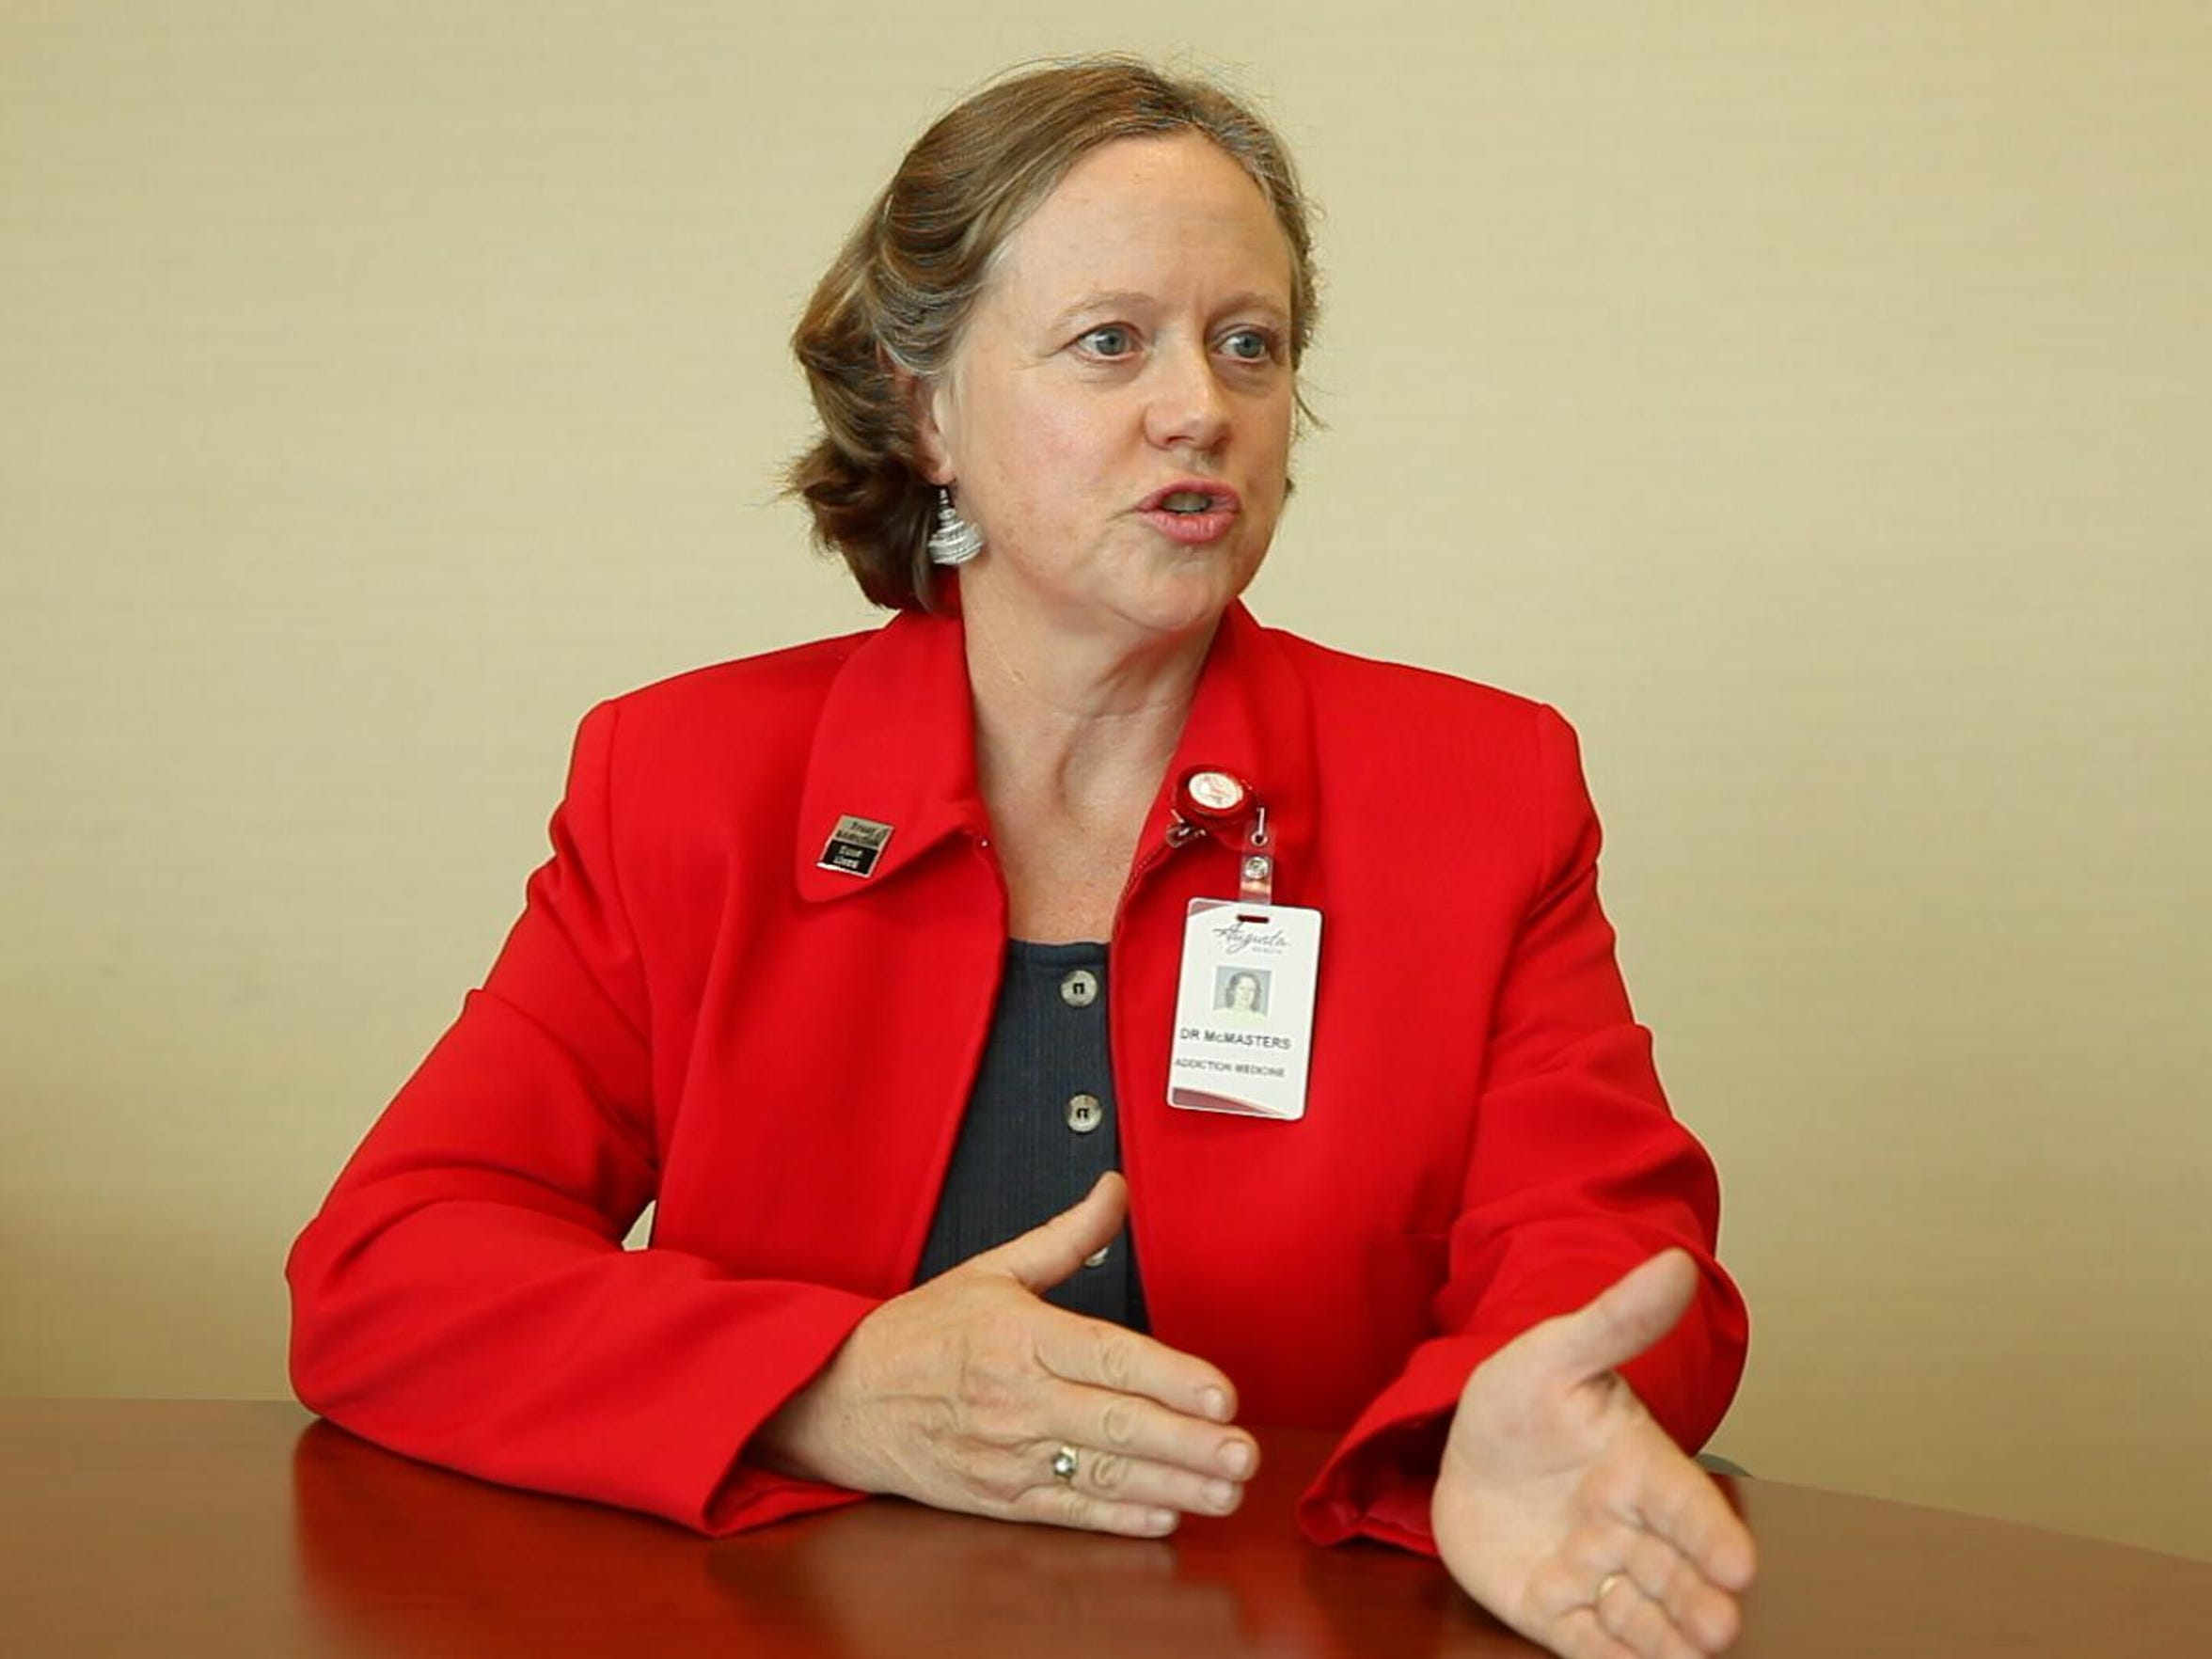 Dr. Mary McMasters